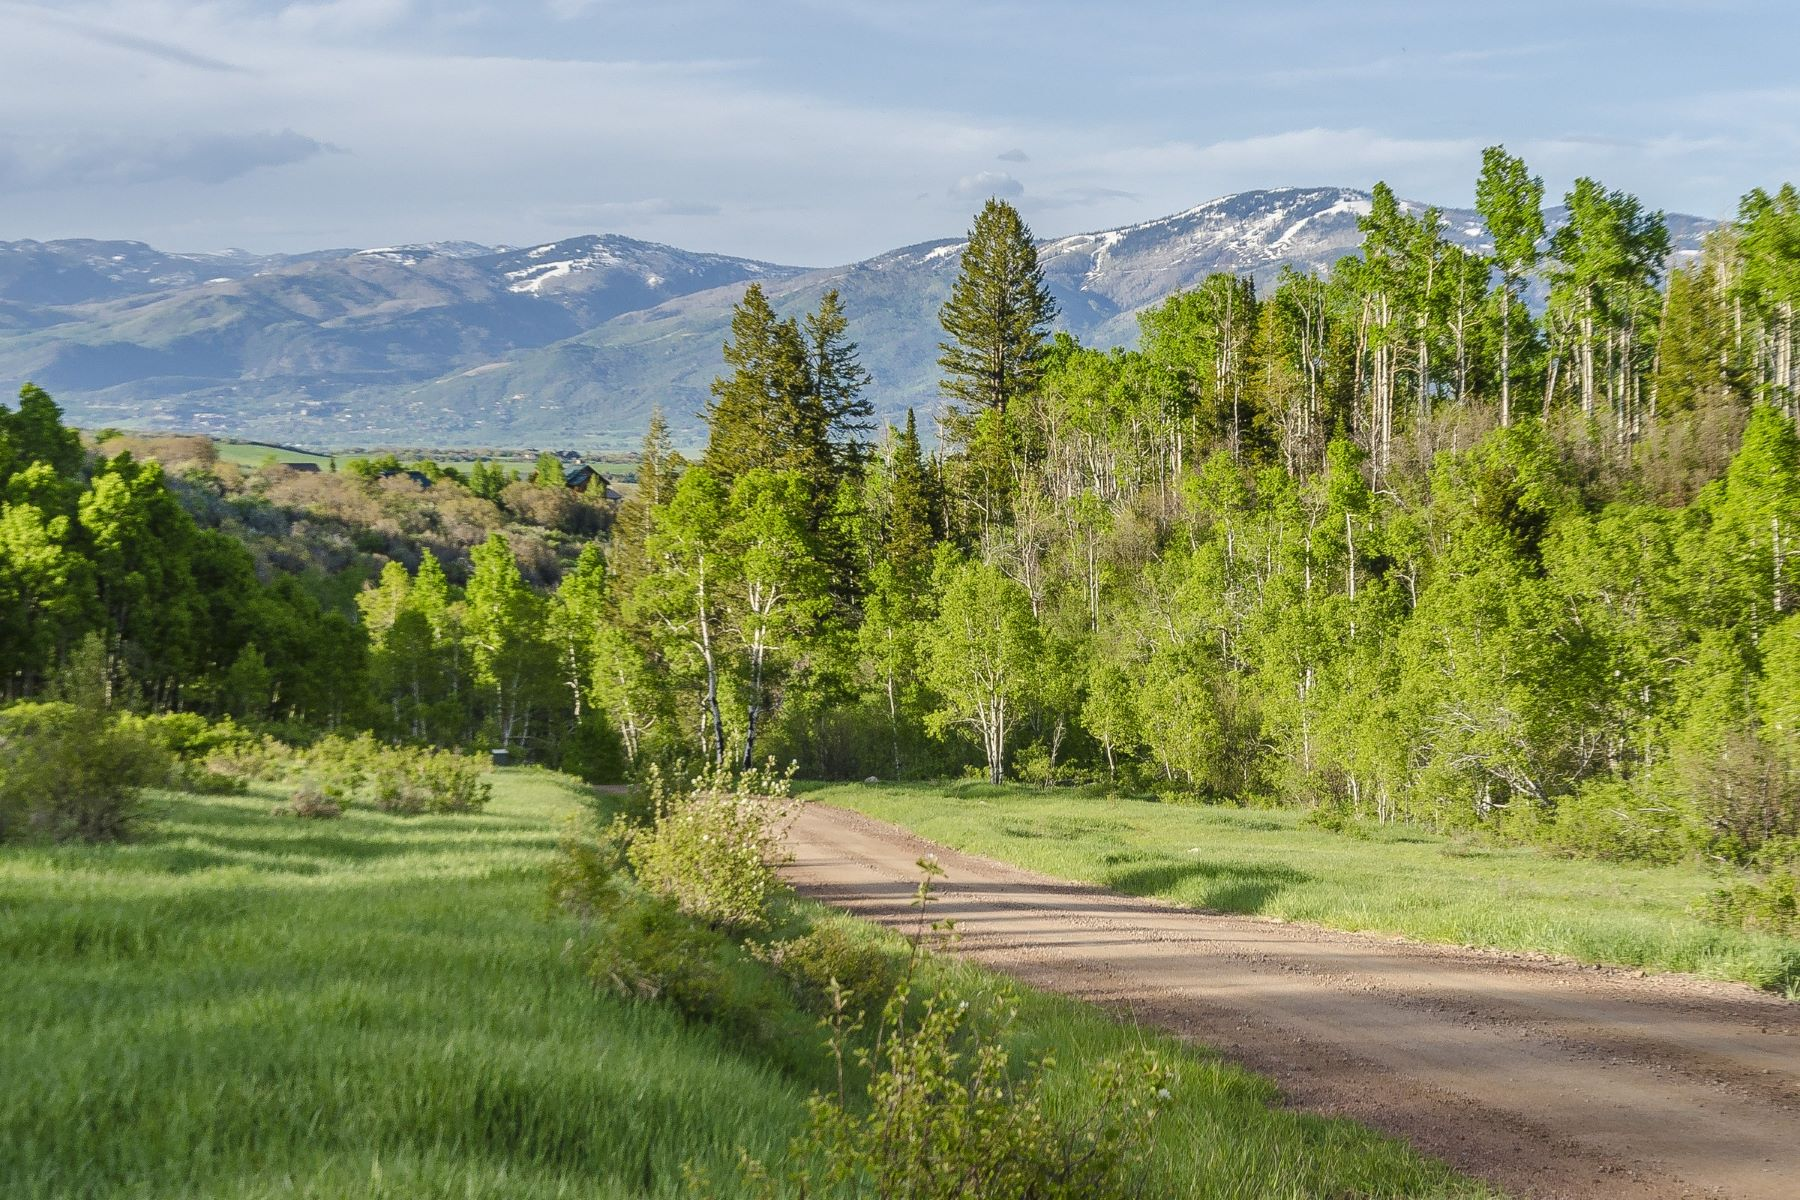 Land for Sale at 35+ Acres with Stunning Mountain Views 28200 Grouse Creek Park Road, Steamboat Springs, Colorado, 80487 United States